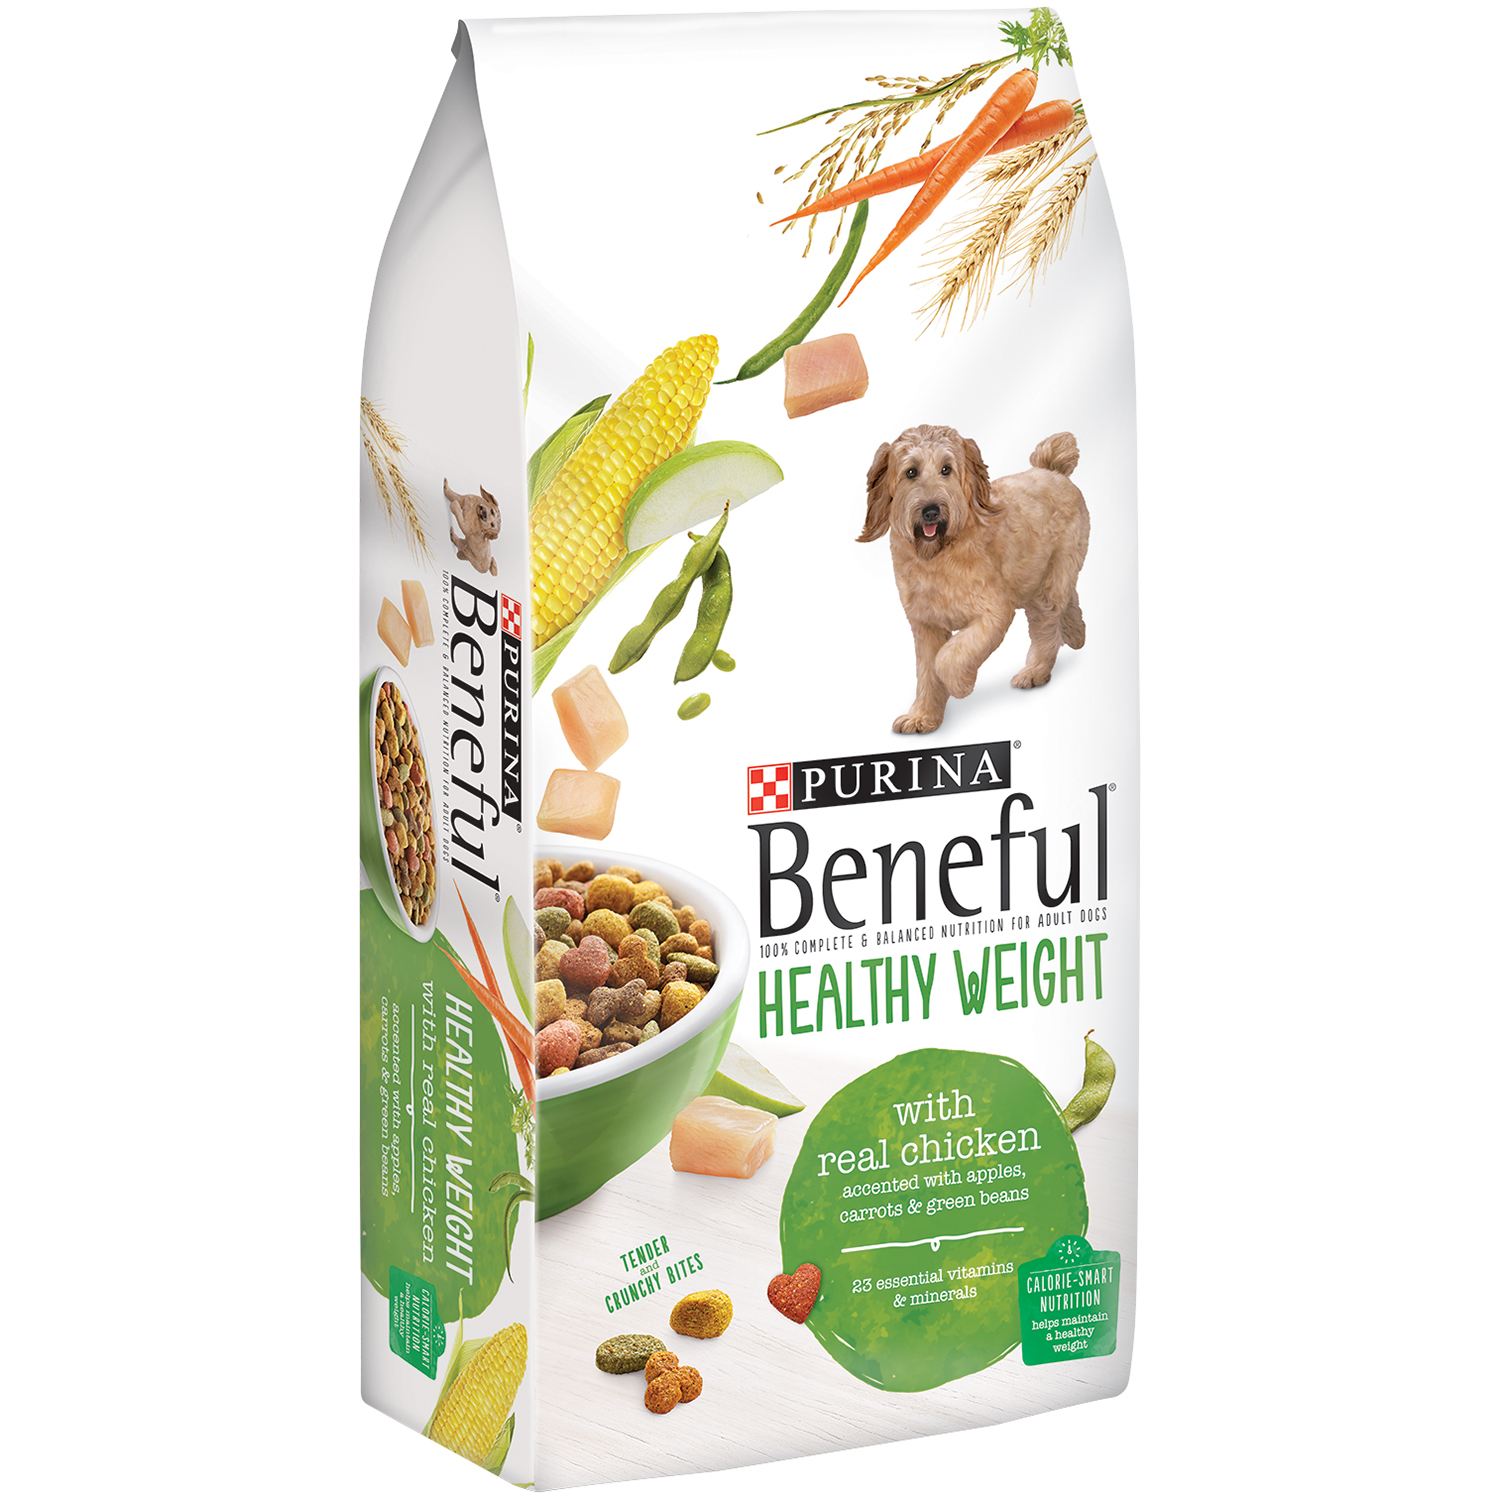 Purina Beneful Healthy Weight With Real Chicken Dog Food 15.5 lb. Bag